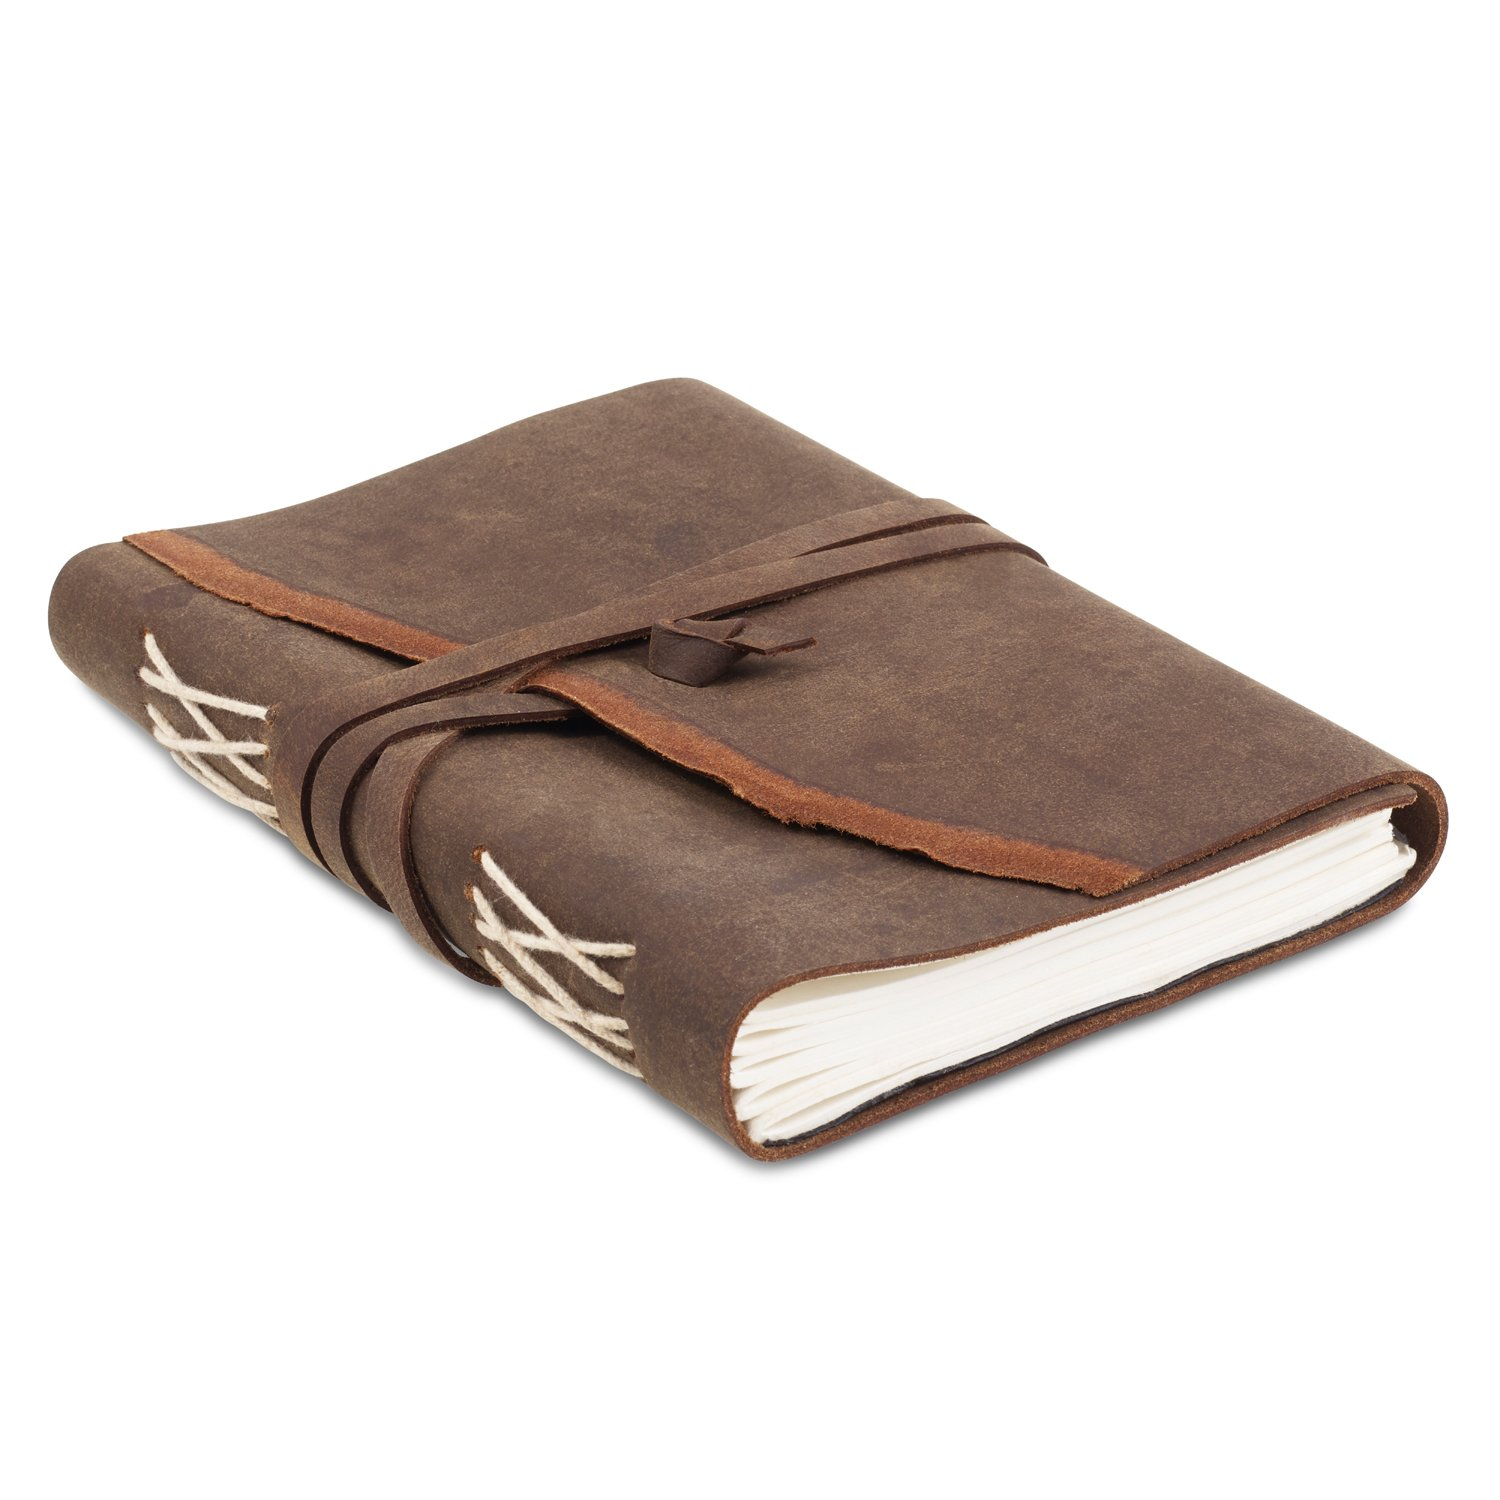 Rustic Leather Writing Journal with Handmade Recycled Cotton Paper, Gift Boxed for Men Women, use as a diary, journal, Artist sketchbook (5 x 7, NATURAL)